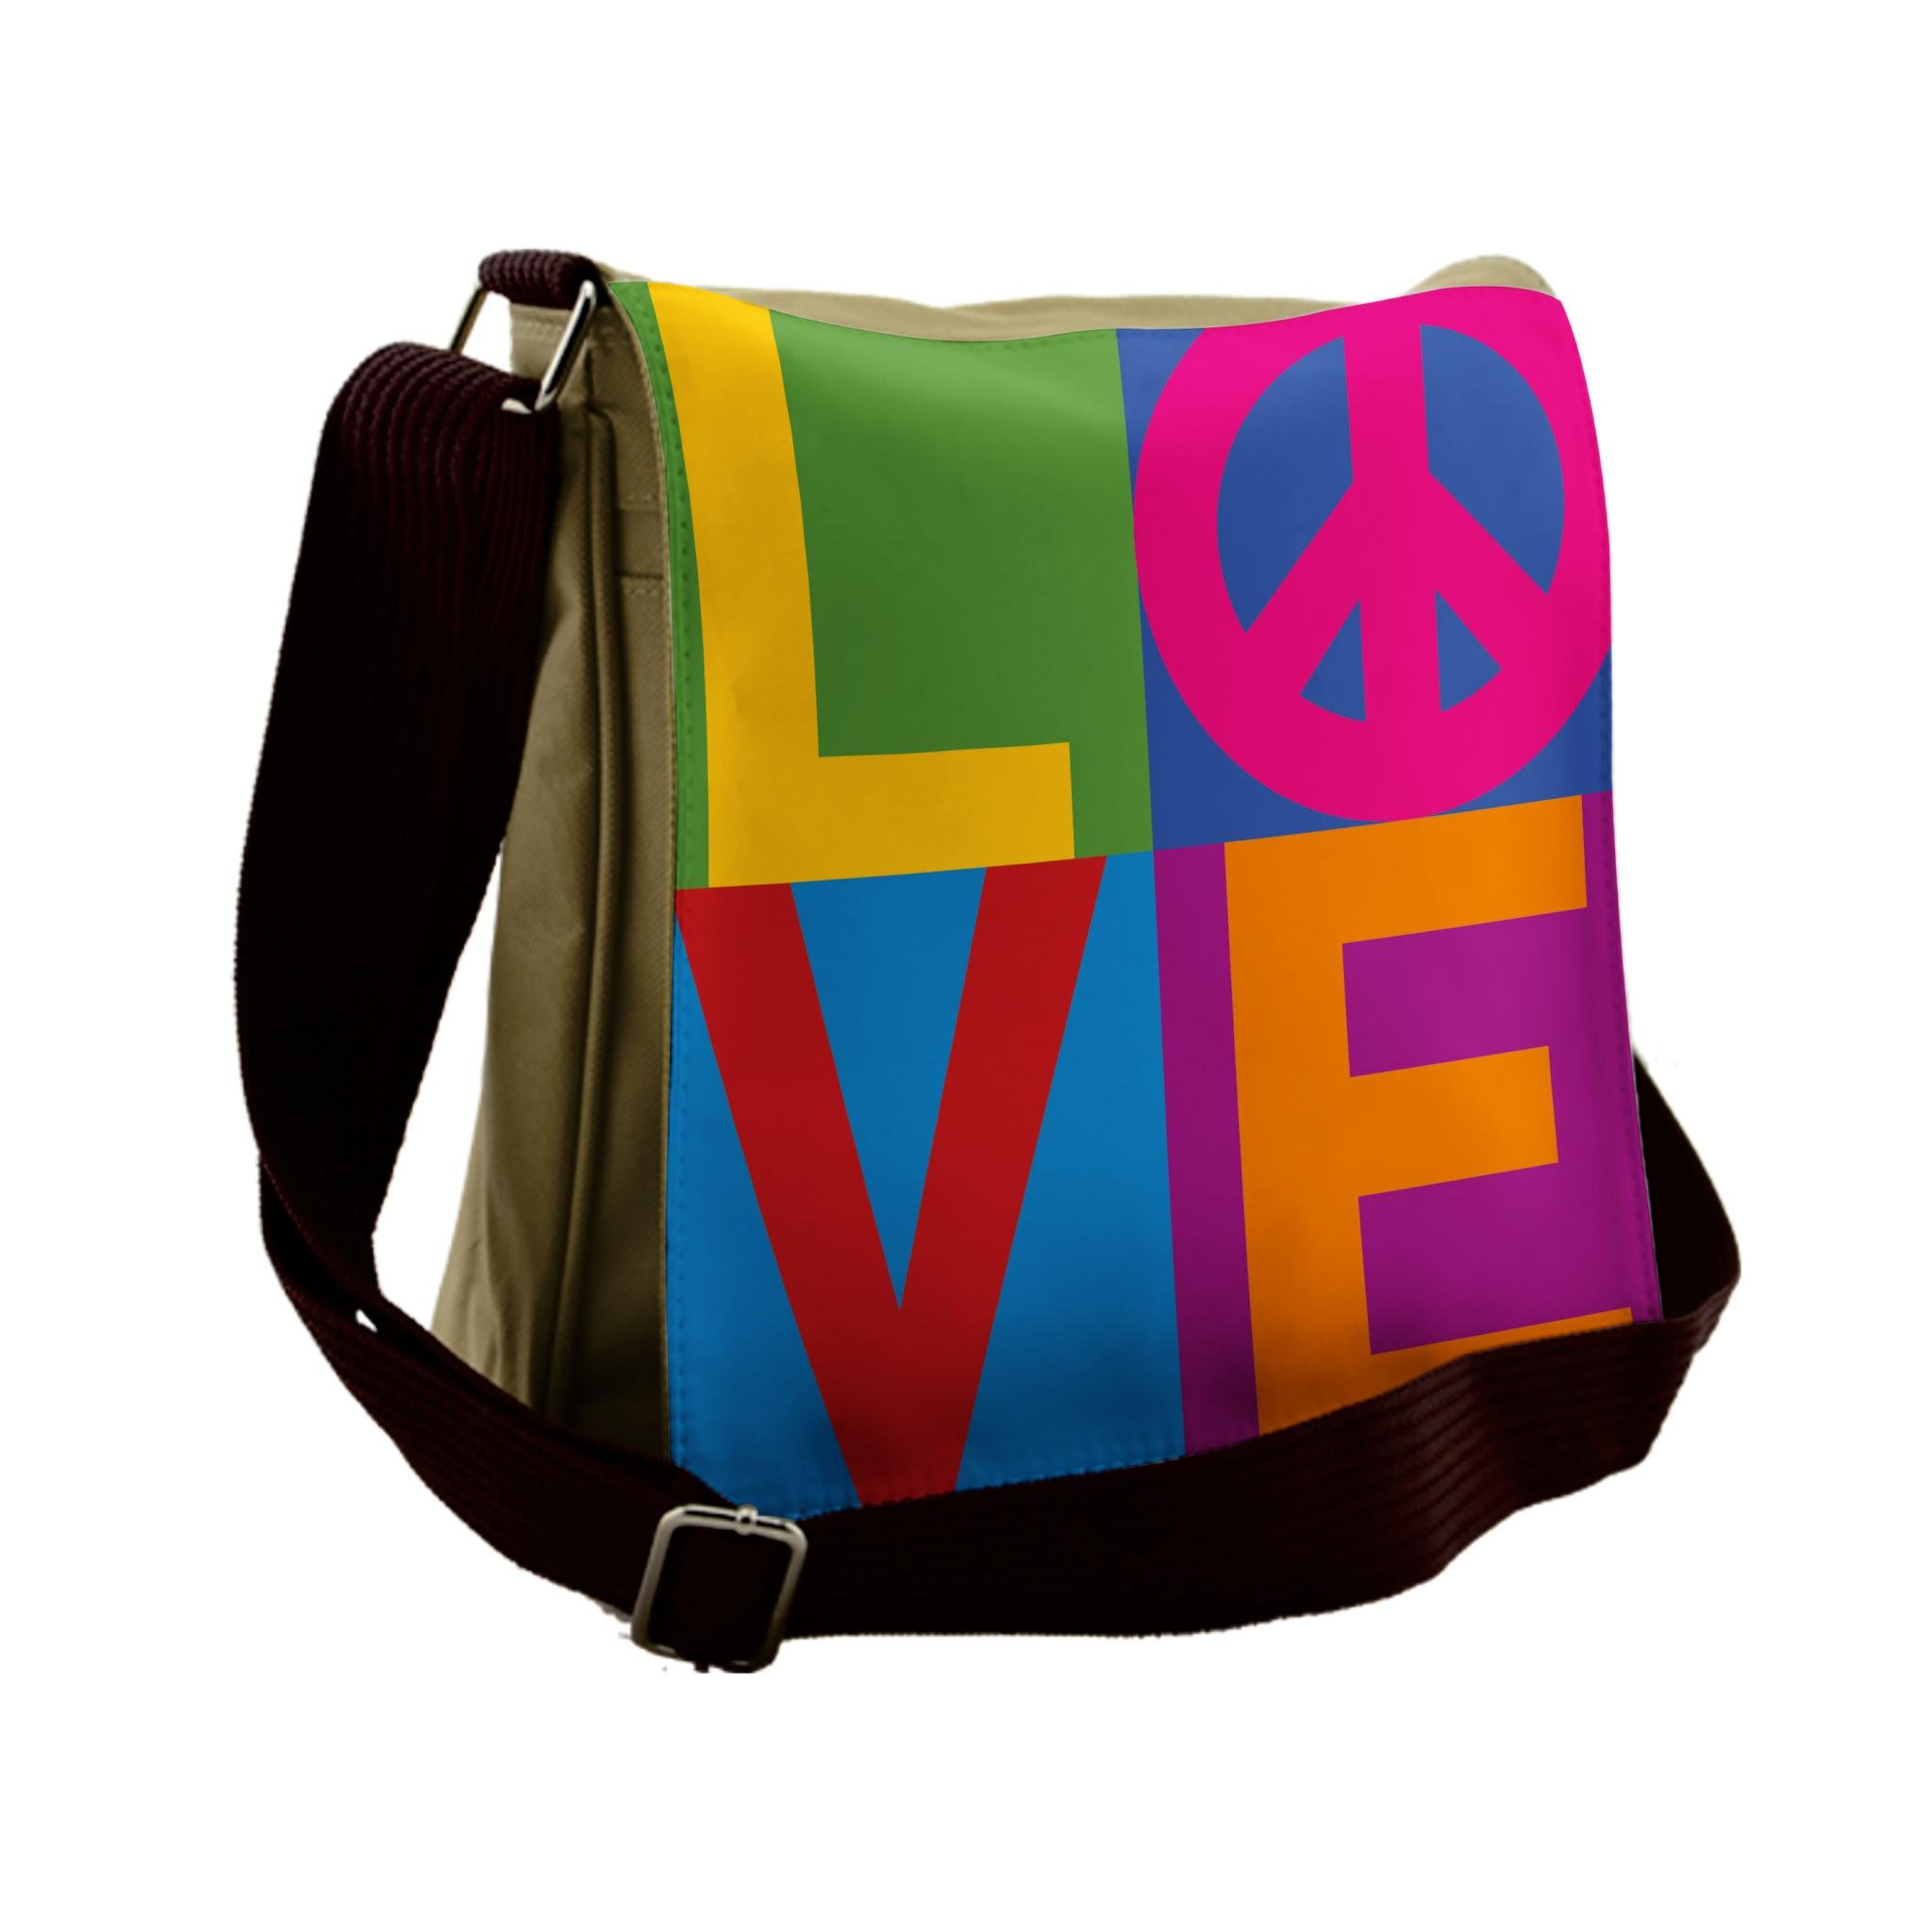 Lunarable Groovy Messenger Bag, Typography of Love Peace, Unisex Cross-body